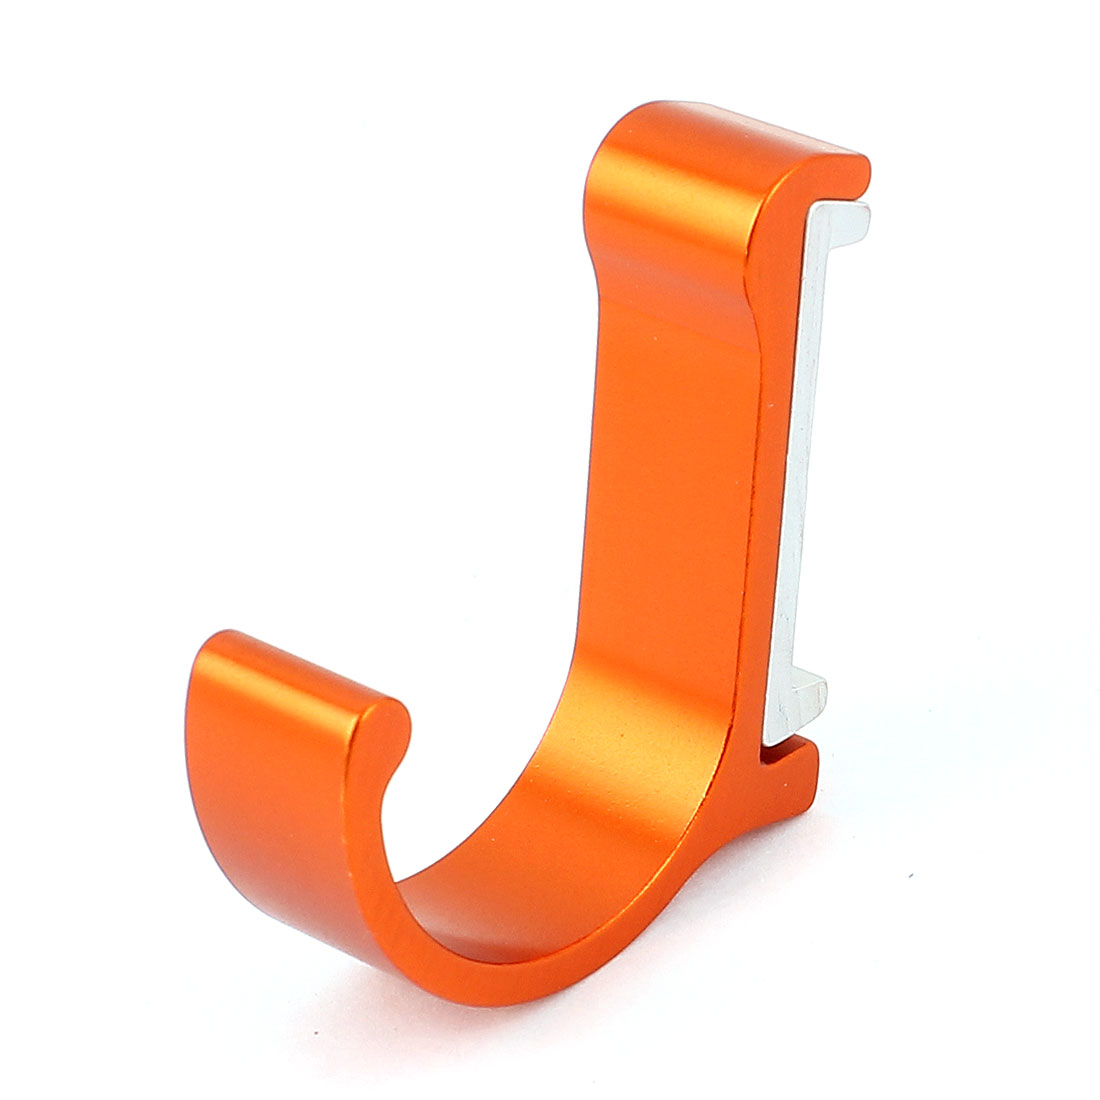 Bathroom Kitchen Wall Door Hook Clothes Hat Towel Robe Holder Hanger Orange